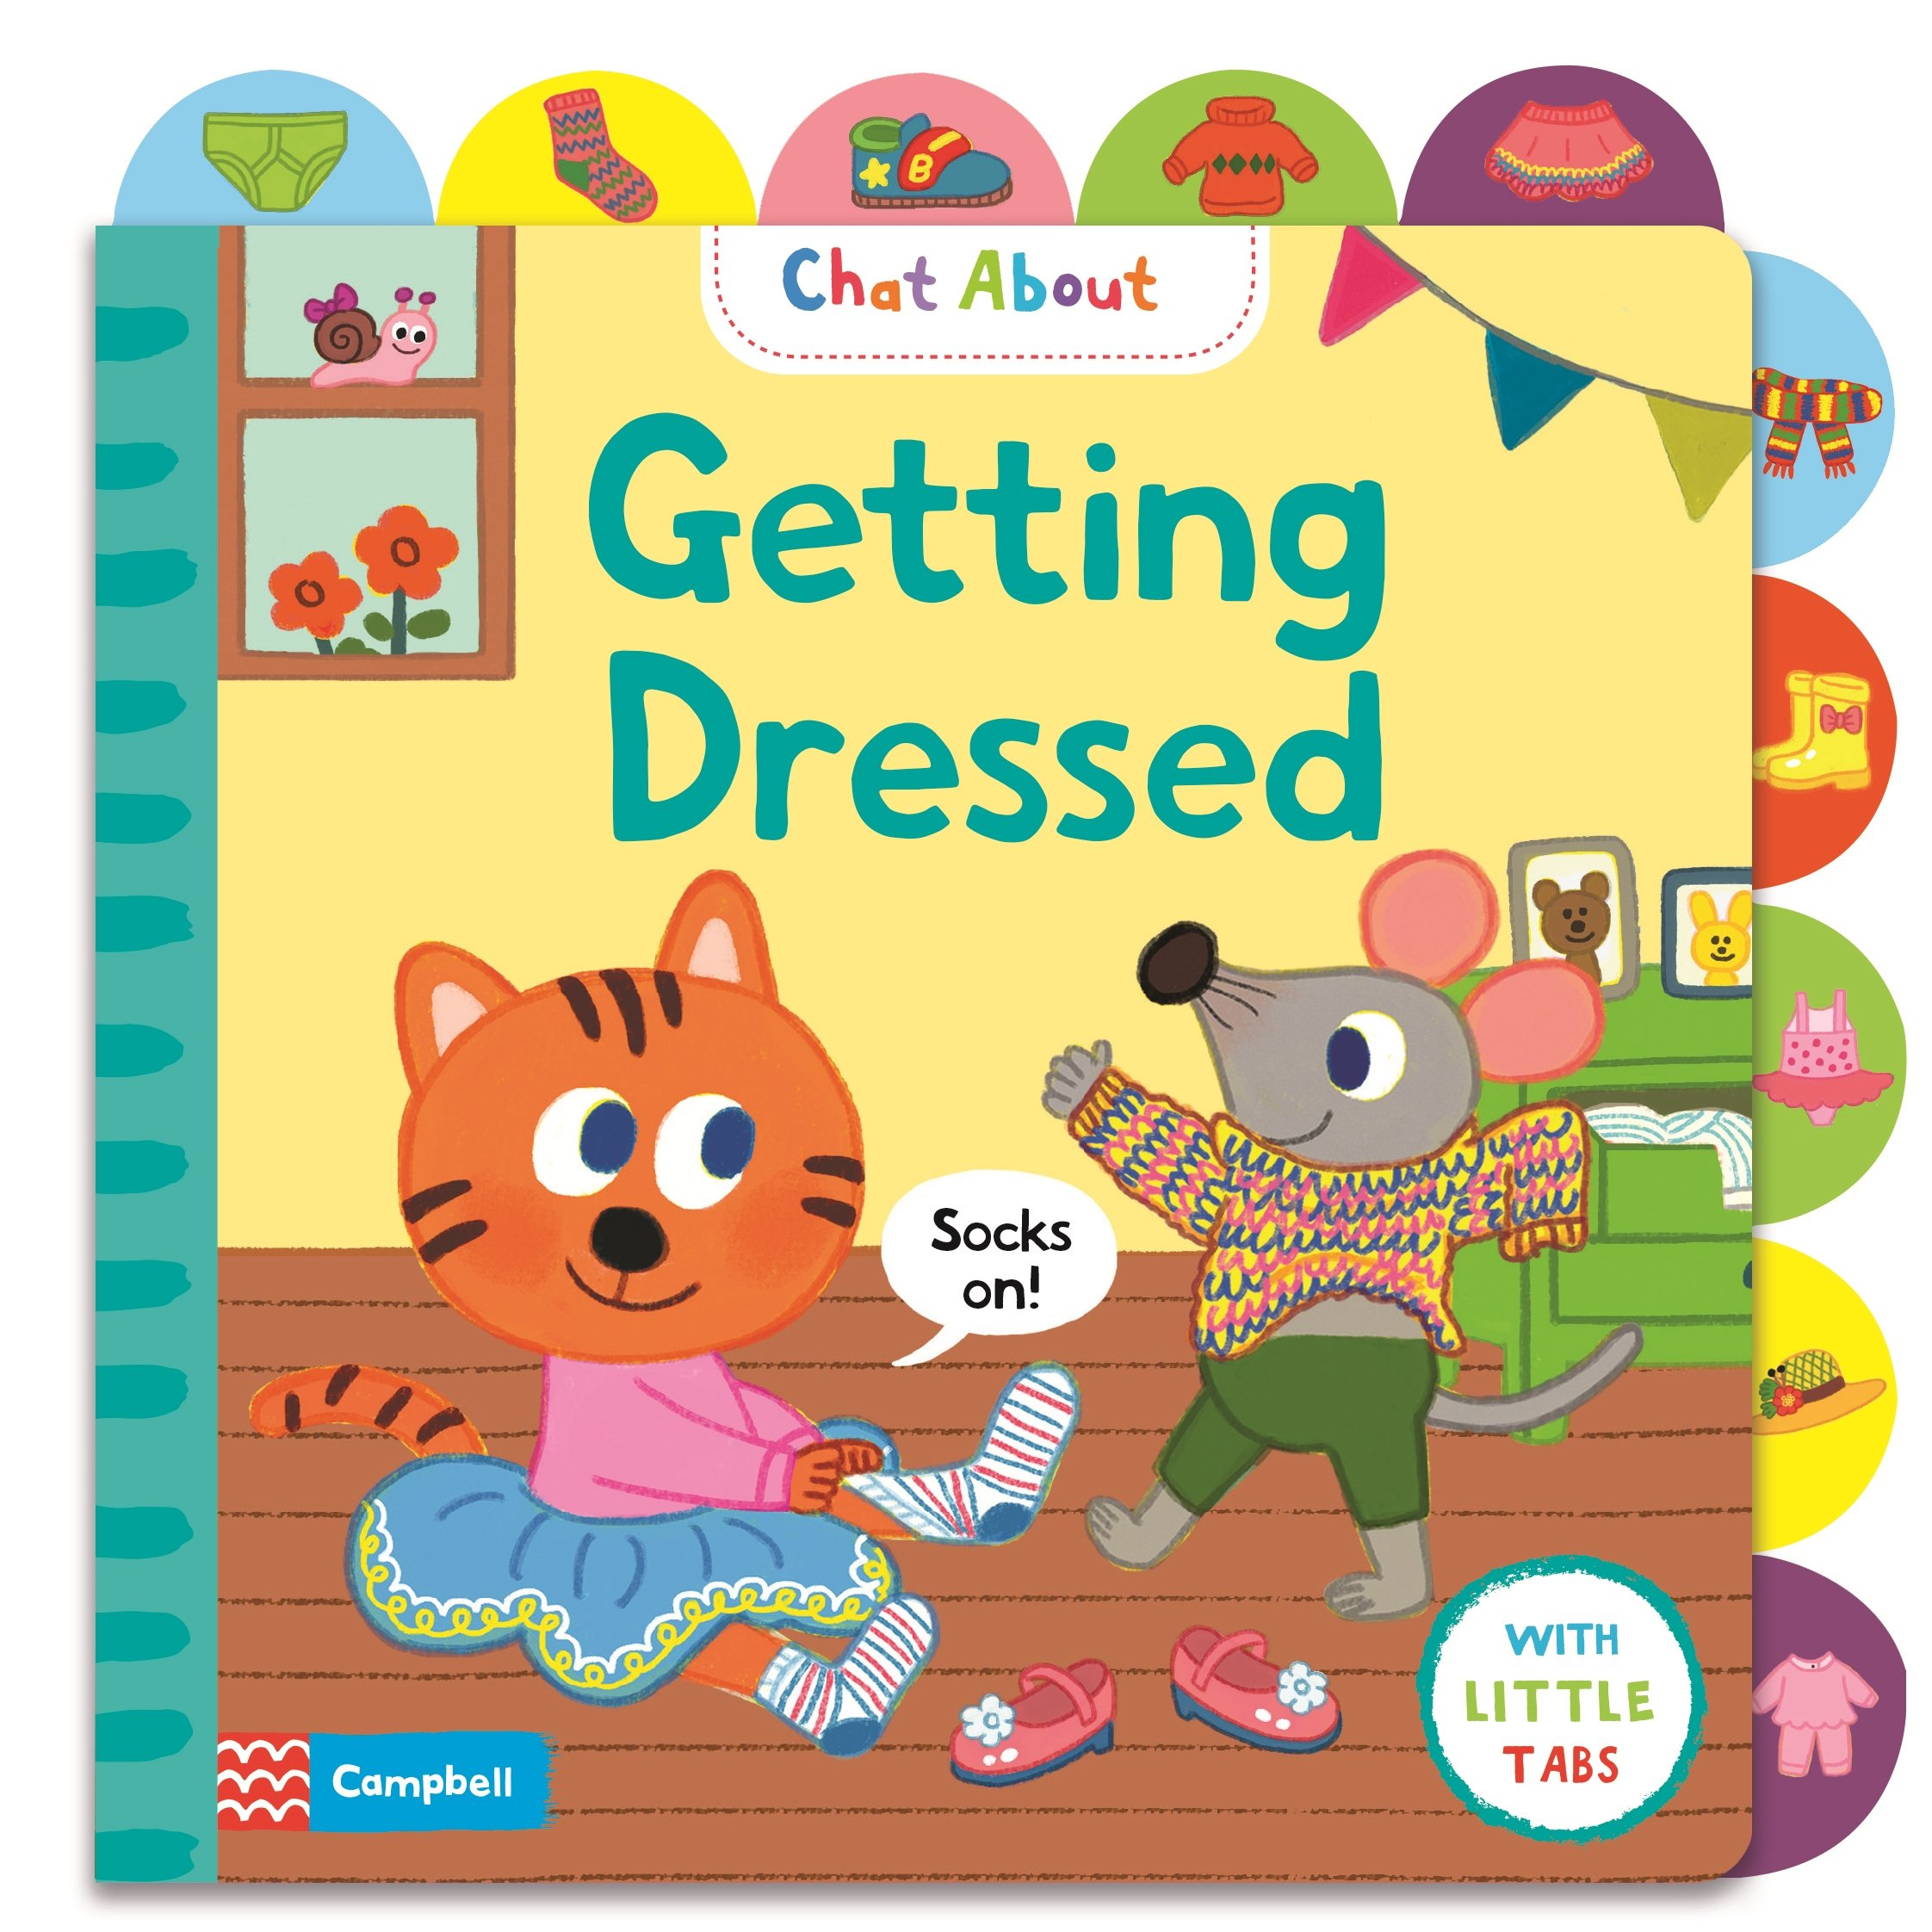 Chat About: Getting Dressed